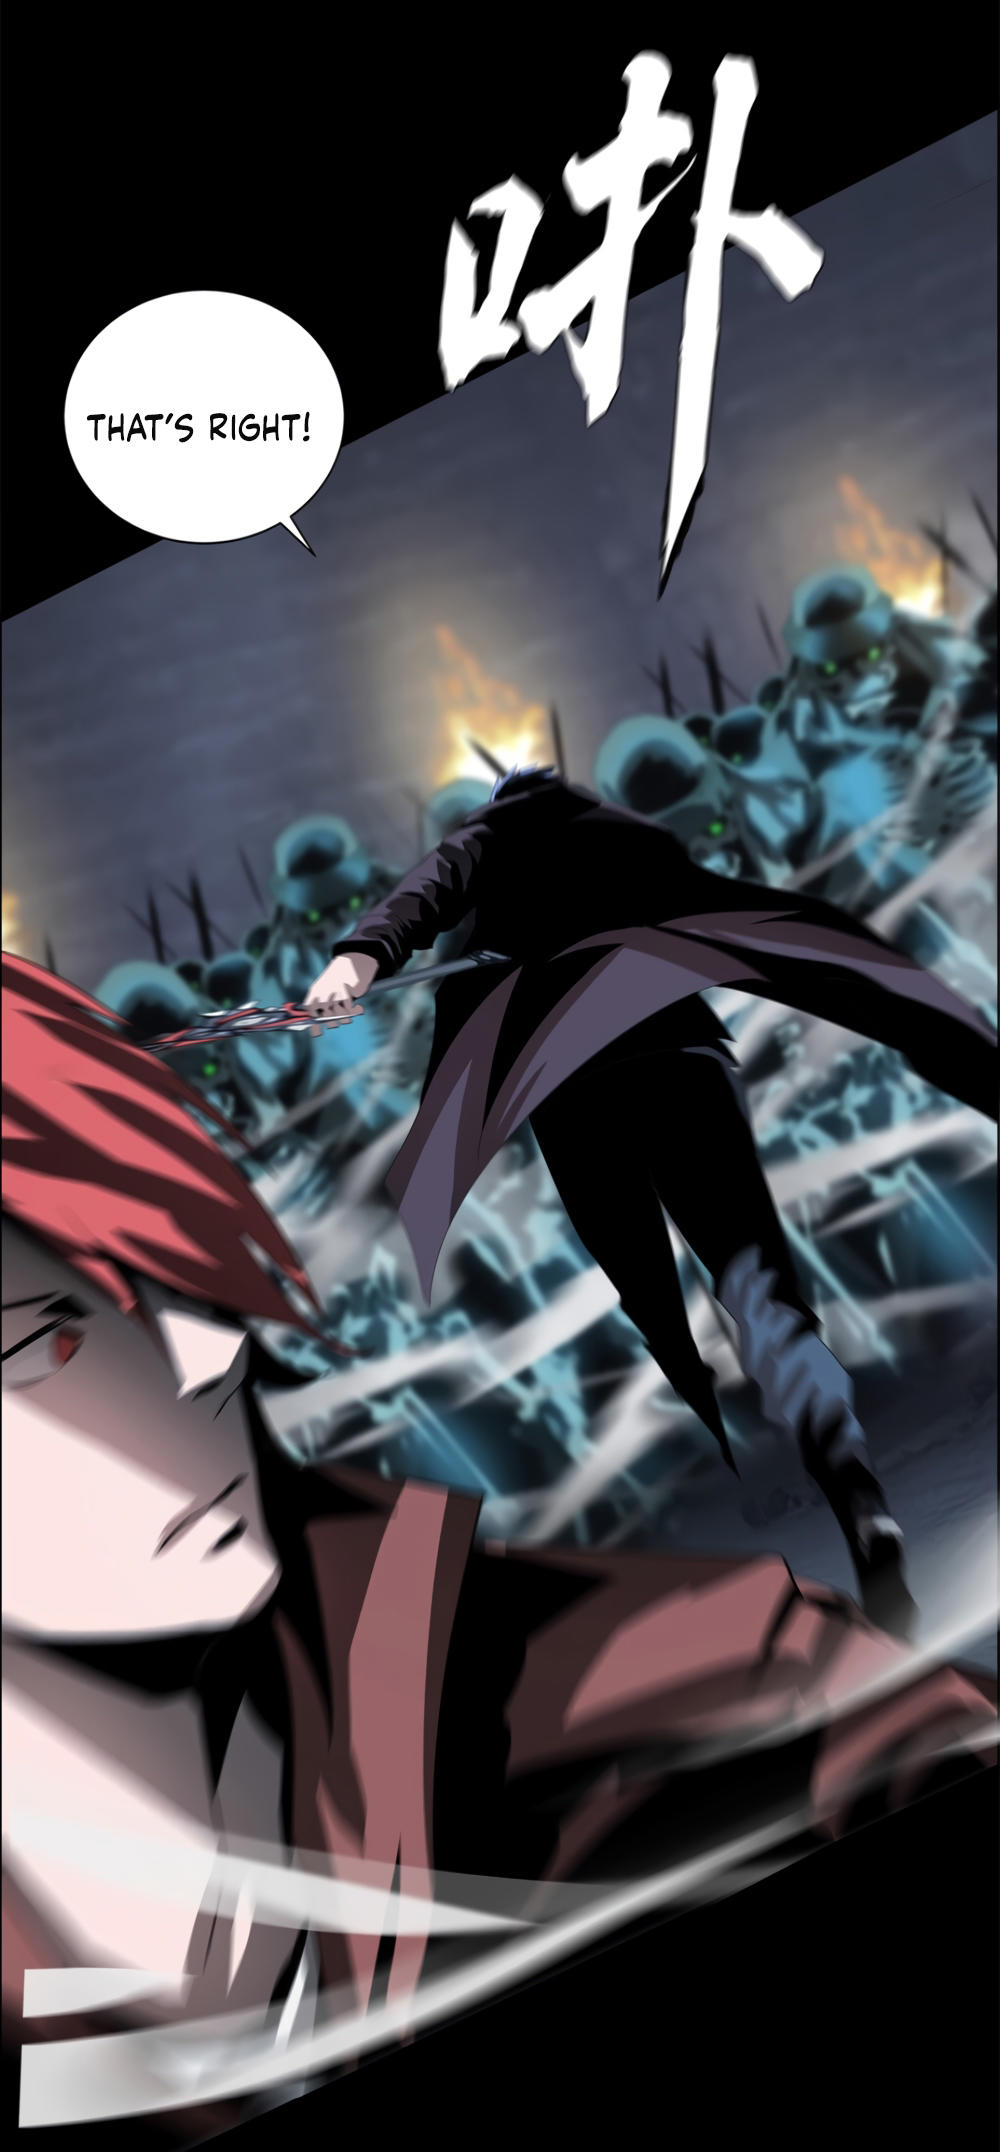 The Blade Of Evolution-Walking Alone In The Dungeon Chapter 37 page 45 - Mangakakalots.com